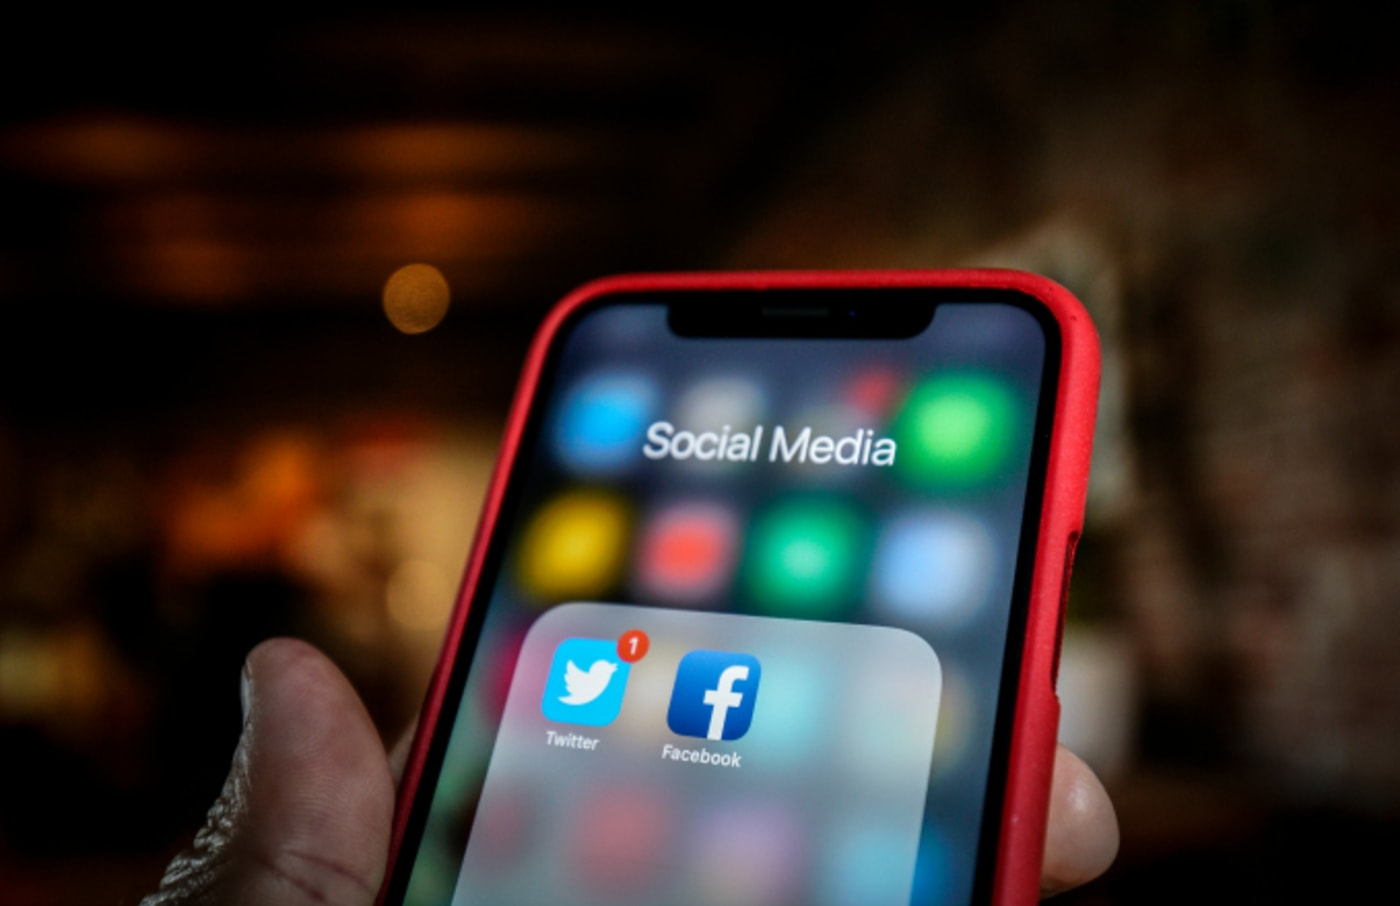 Twitter and Facebook applications are seen grouped in a Social Media folder